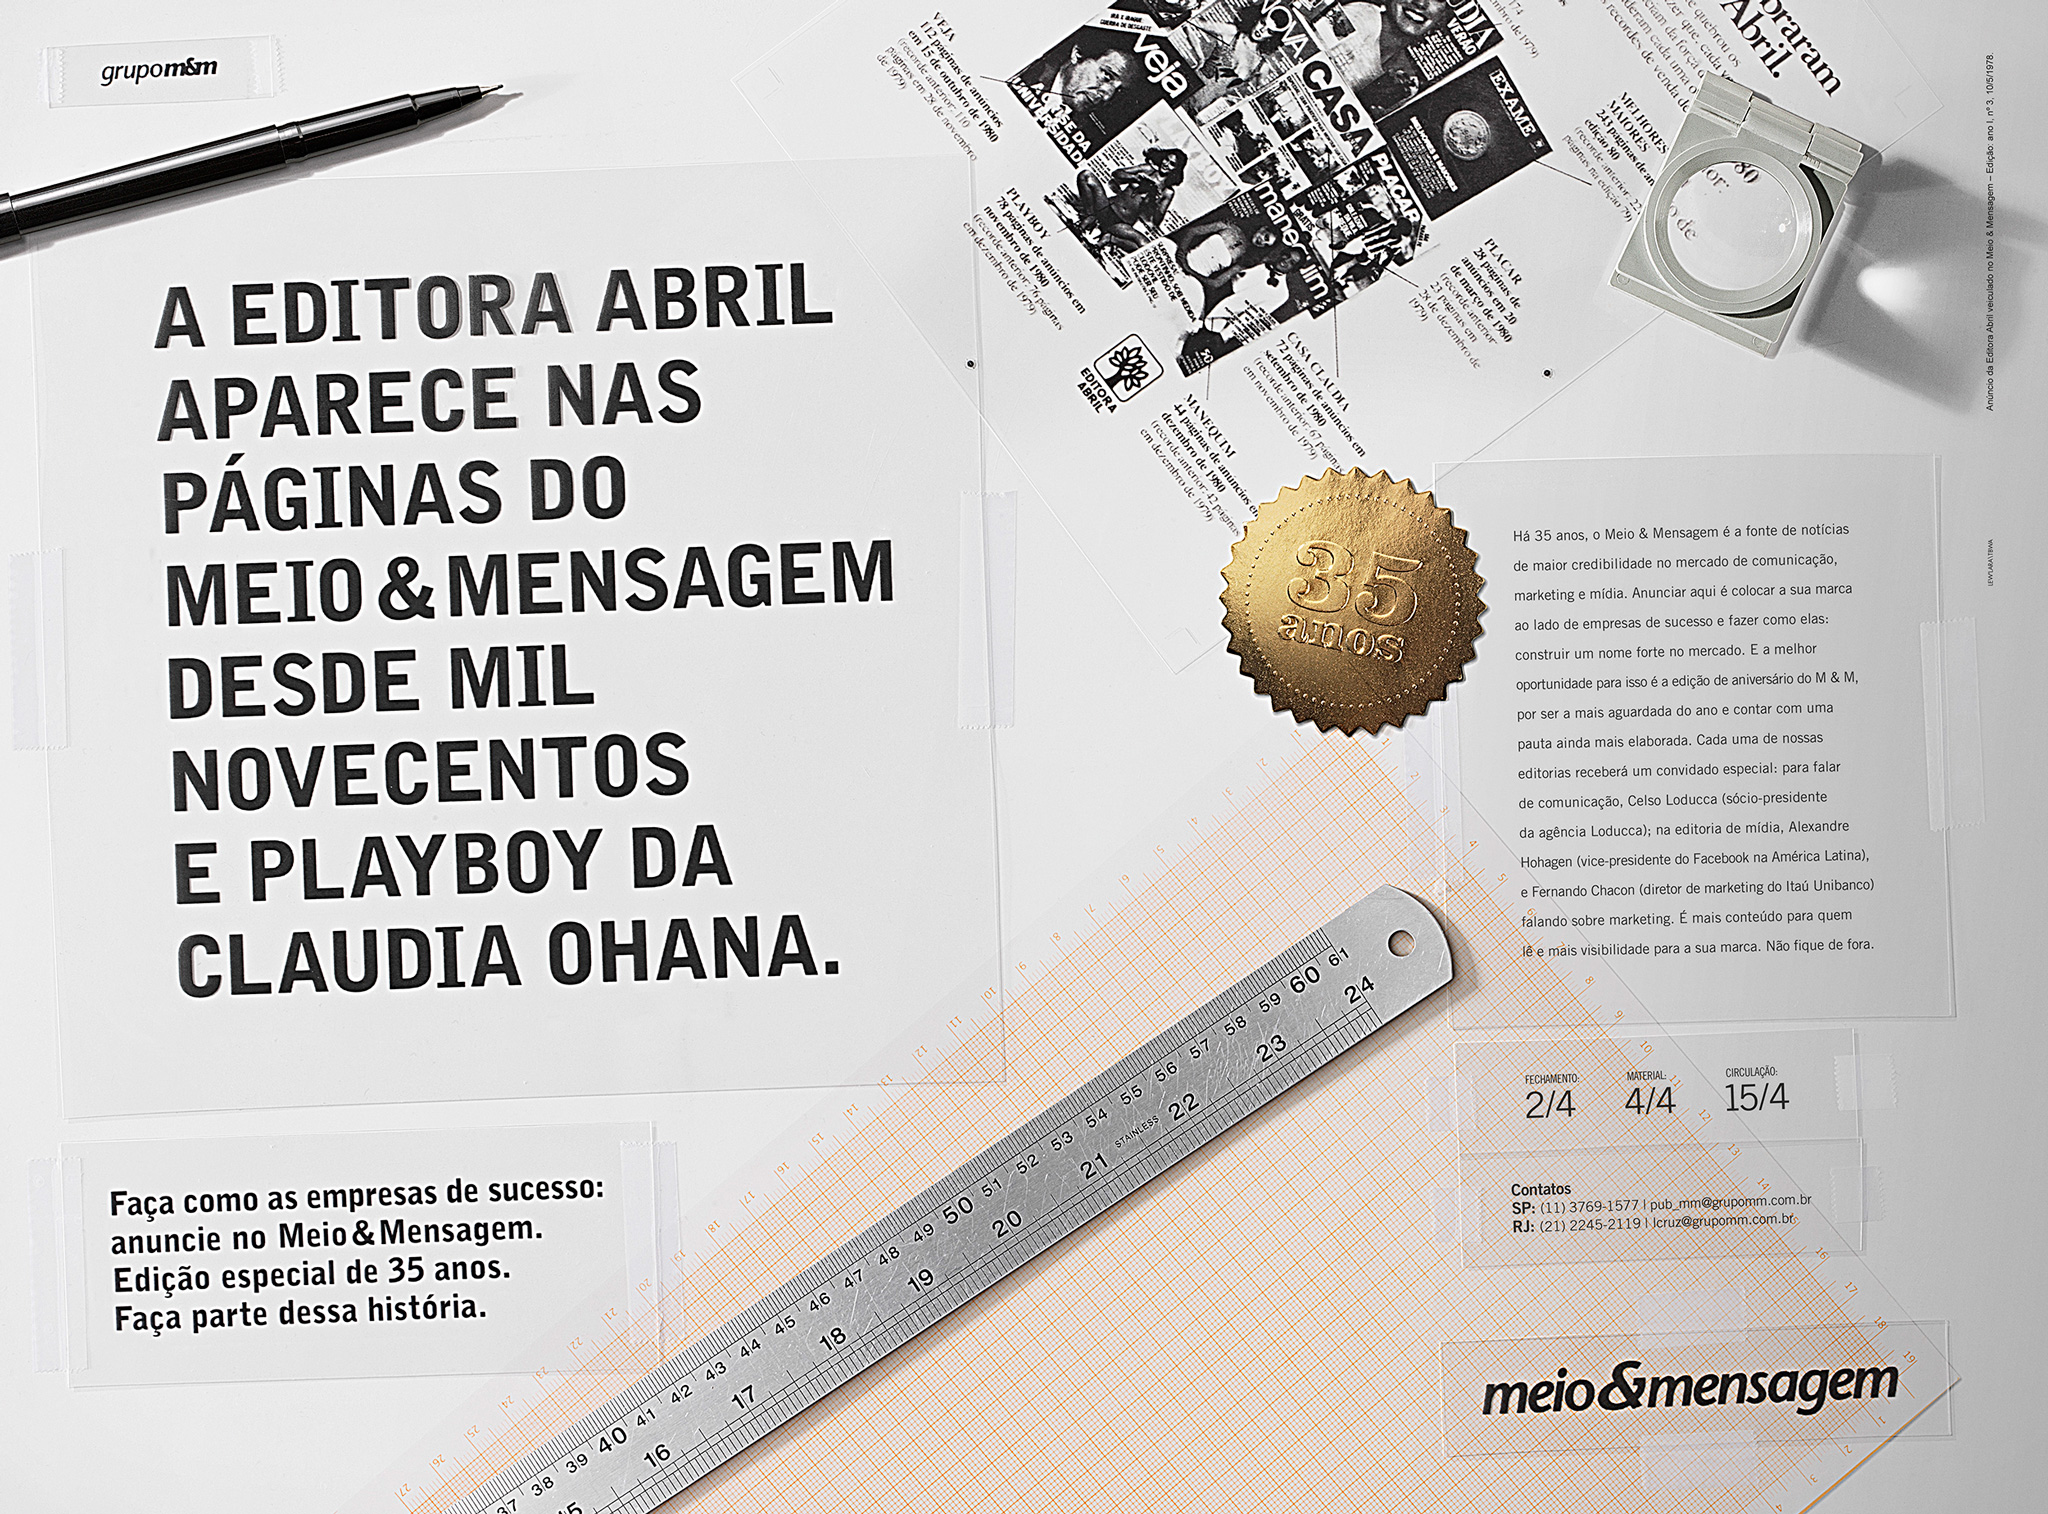 Abril Publishing in on the pages of meio&mensagem since one thousand nine hundred and Claudia Ohana's Playboy.